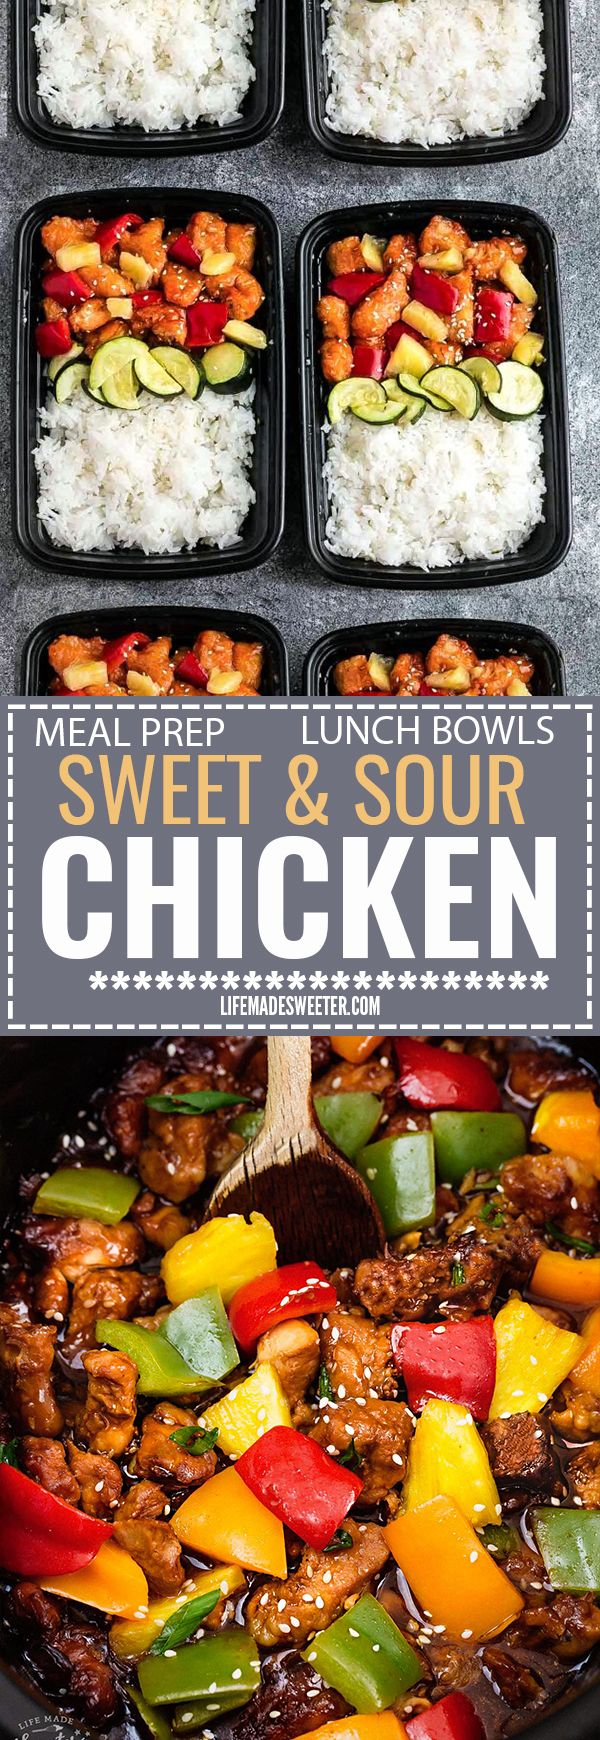 Slow Cooker Sweet and Sour Chicken Meal Prep Lunch Bowls - coated in a sweet, savory and tangy sauce that is even better than your local takeout restaurant! Best of all, it's full of authentic flavors